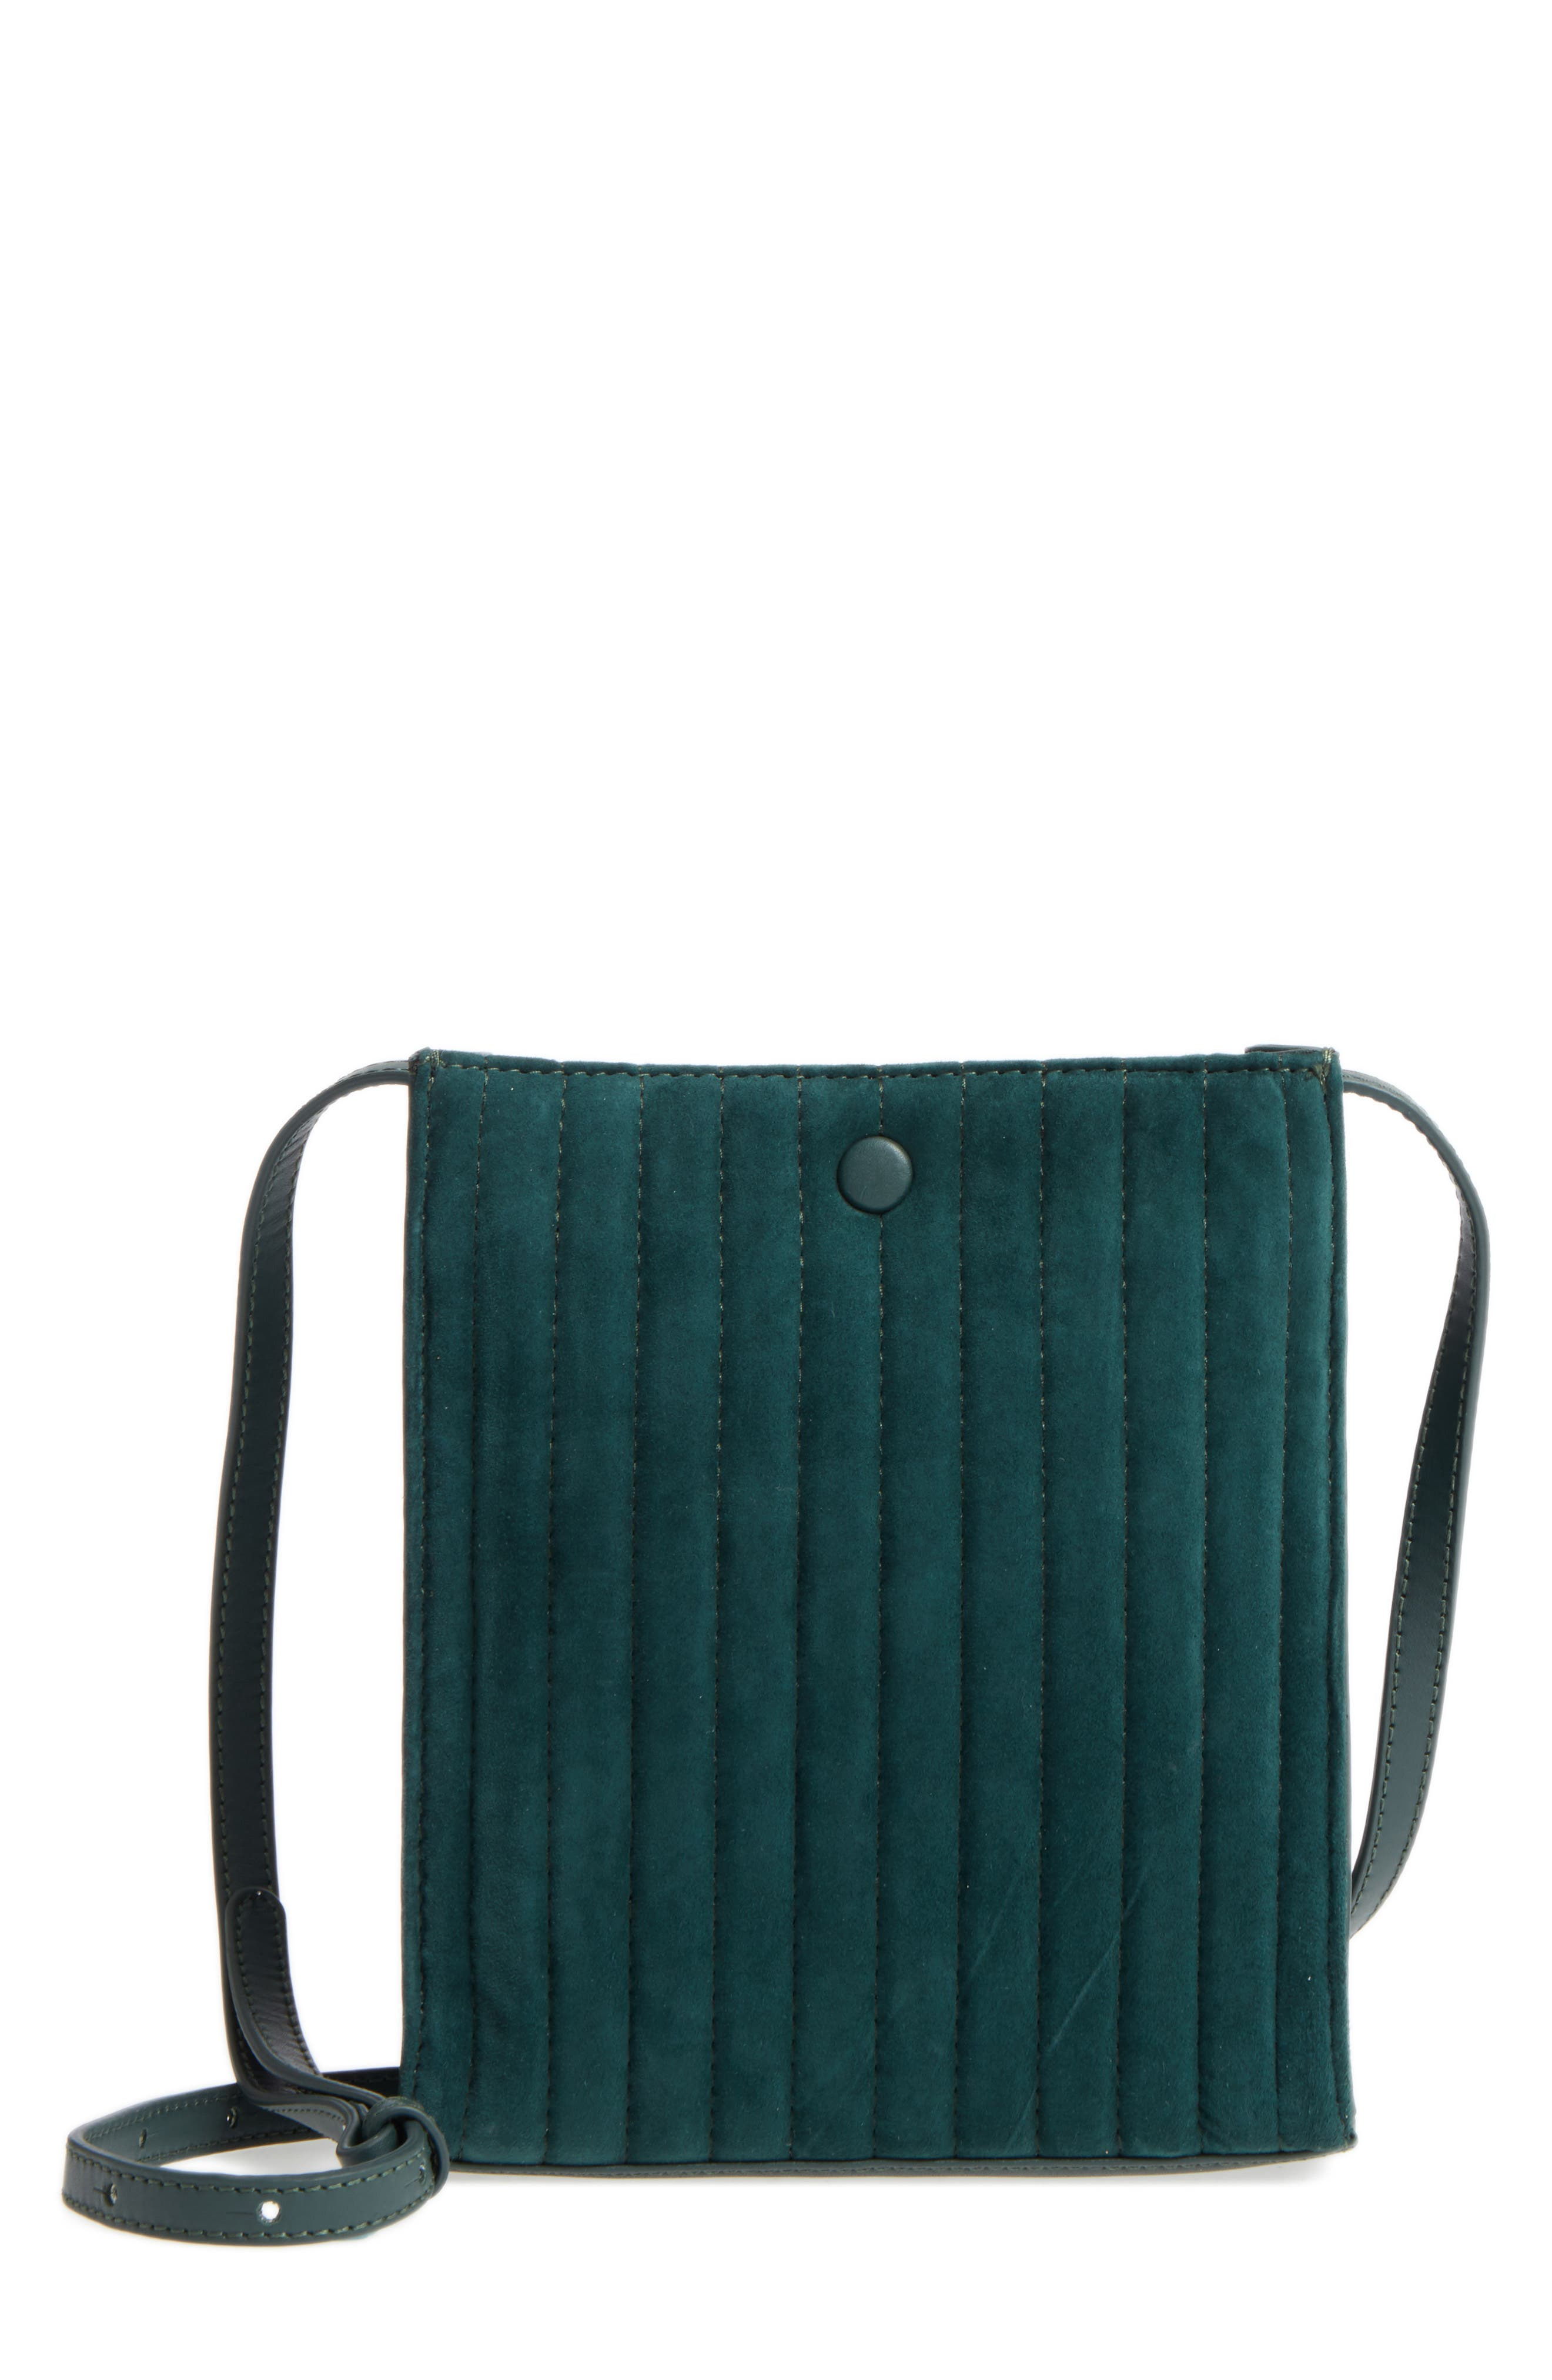 Camden Leather Crossbody Bag,                             Main thumbnail 1, color,                             Ink Green Quilted